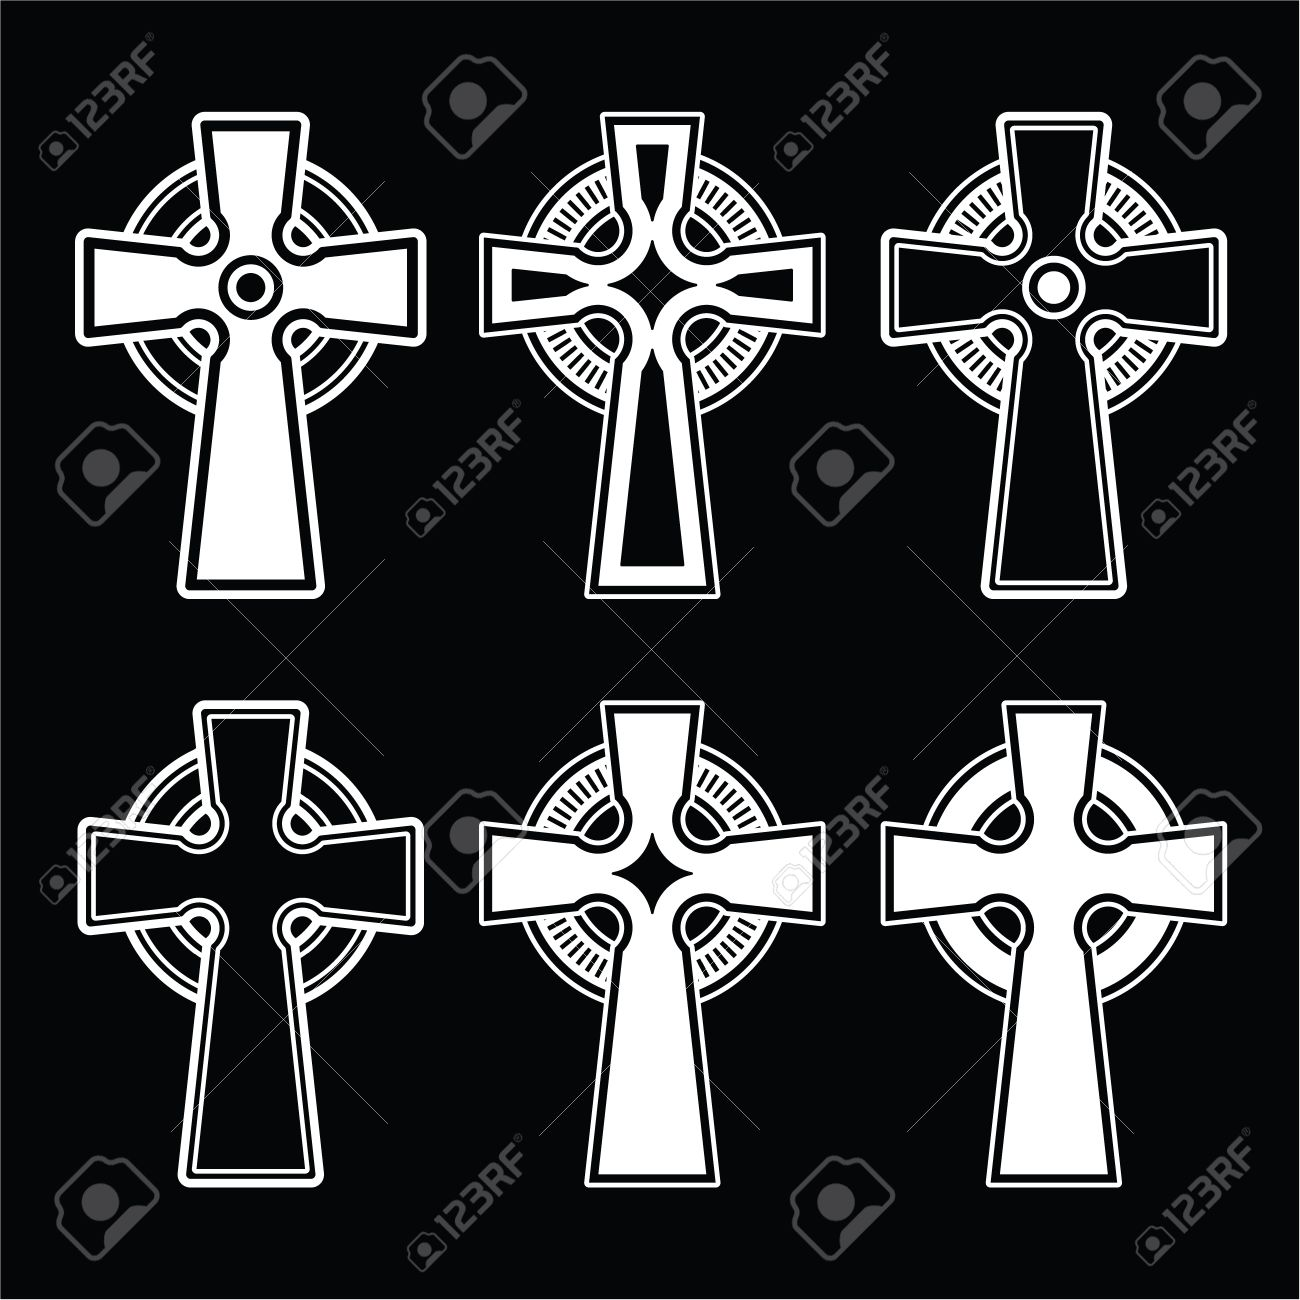 Irish scottish celtic cross on black royalty free cliparts irish scottish celtic cross on black stock vector 25964034 buycottarizona